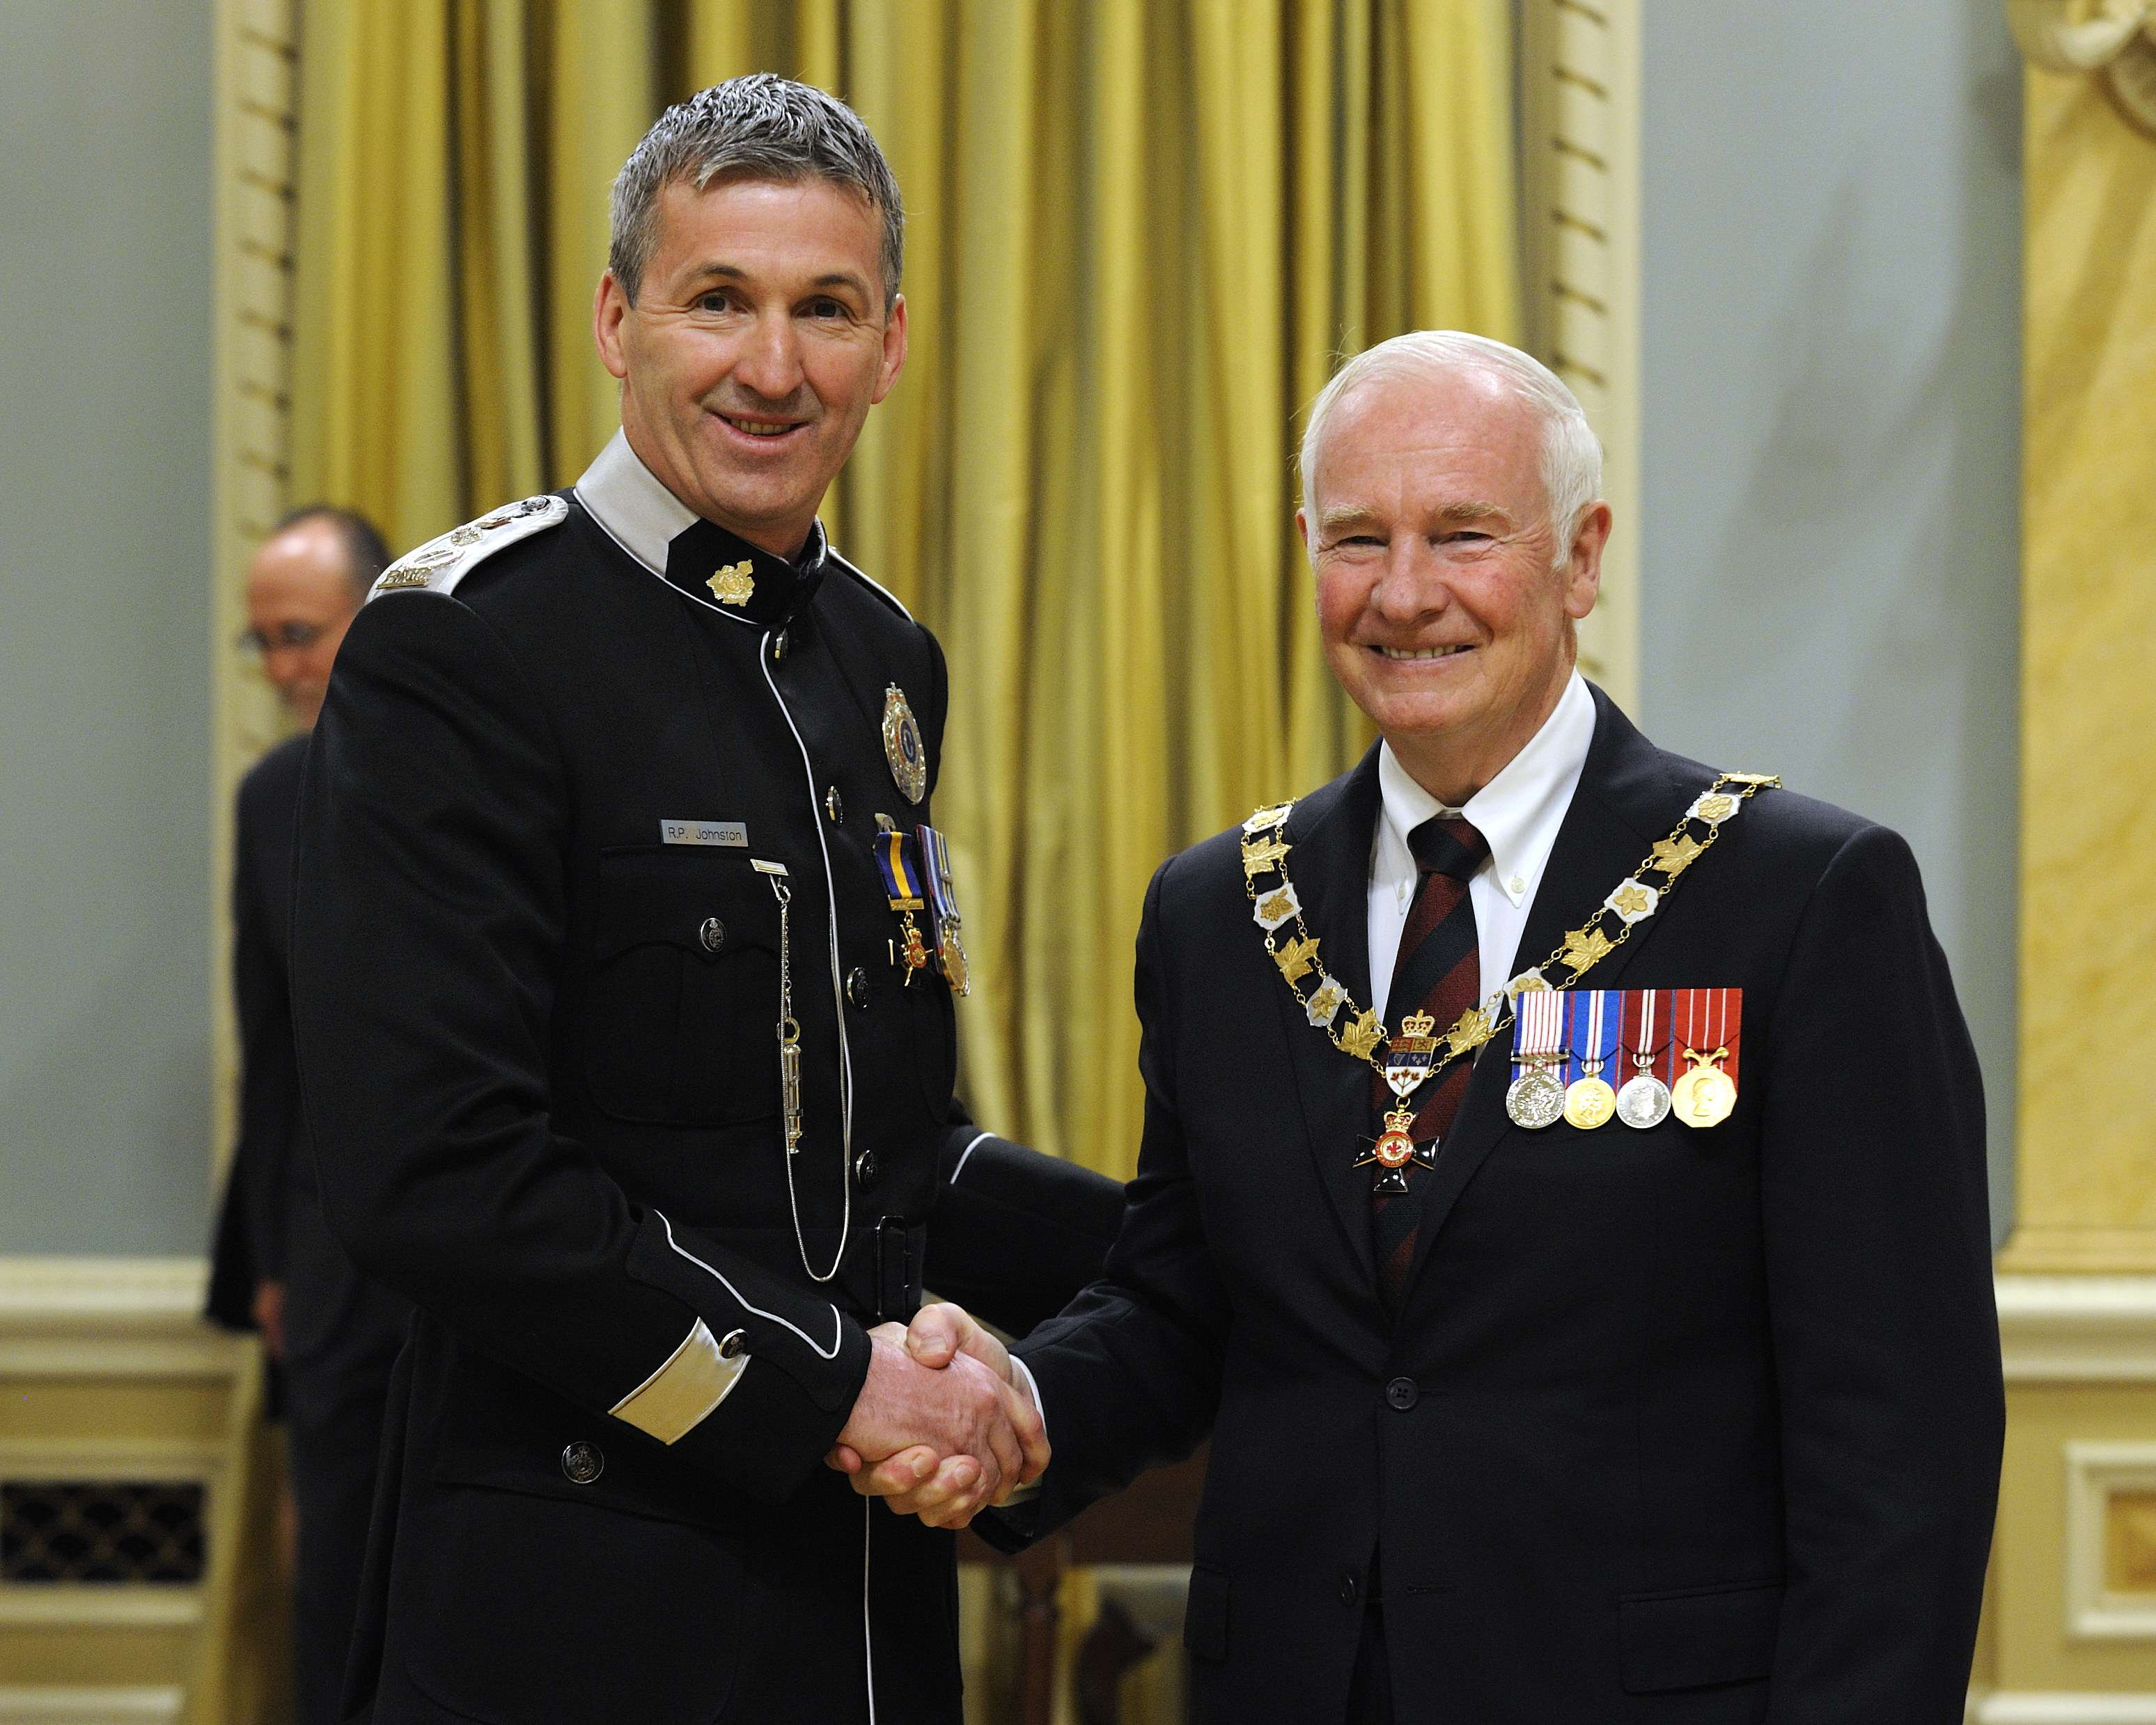 His Excellency presented the Order of Merit of the Police Forces at the Officer level (O.O.M.) to Chief Robert Philip Johnston, O.O.M., of the Royal Newfoundland Constabulary, Newfoundland and Labrador.